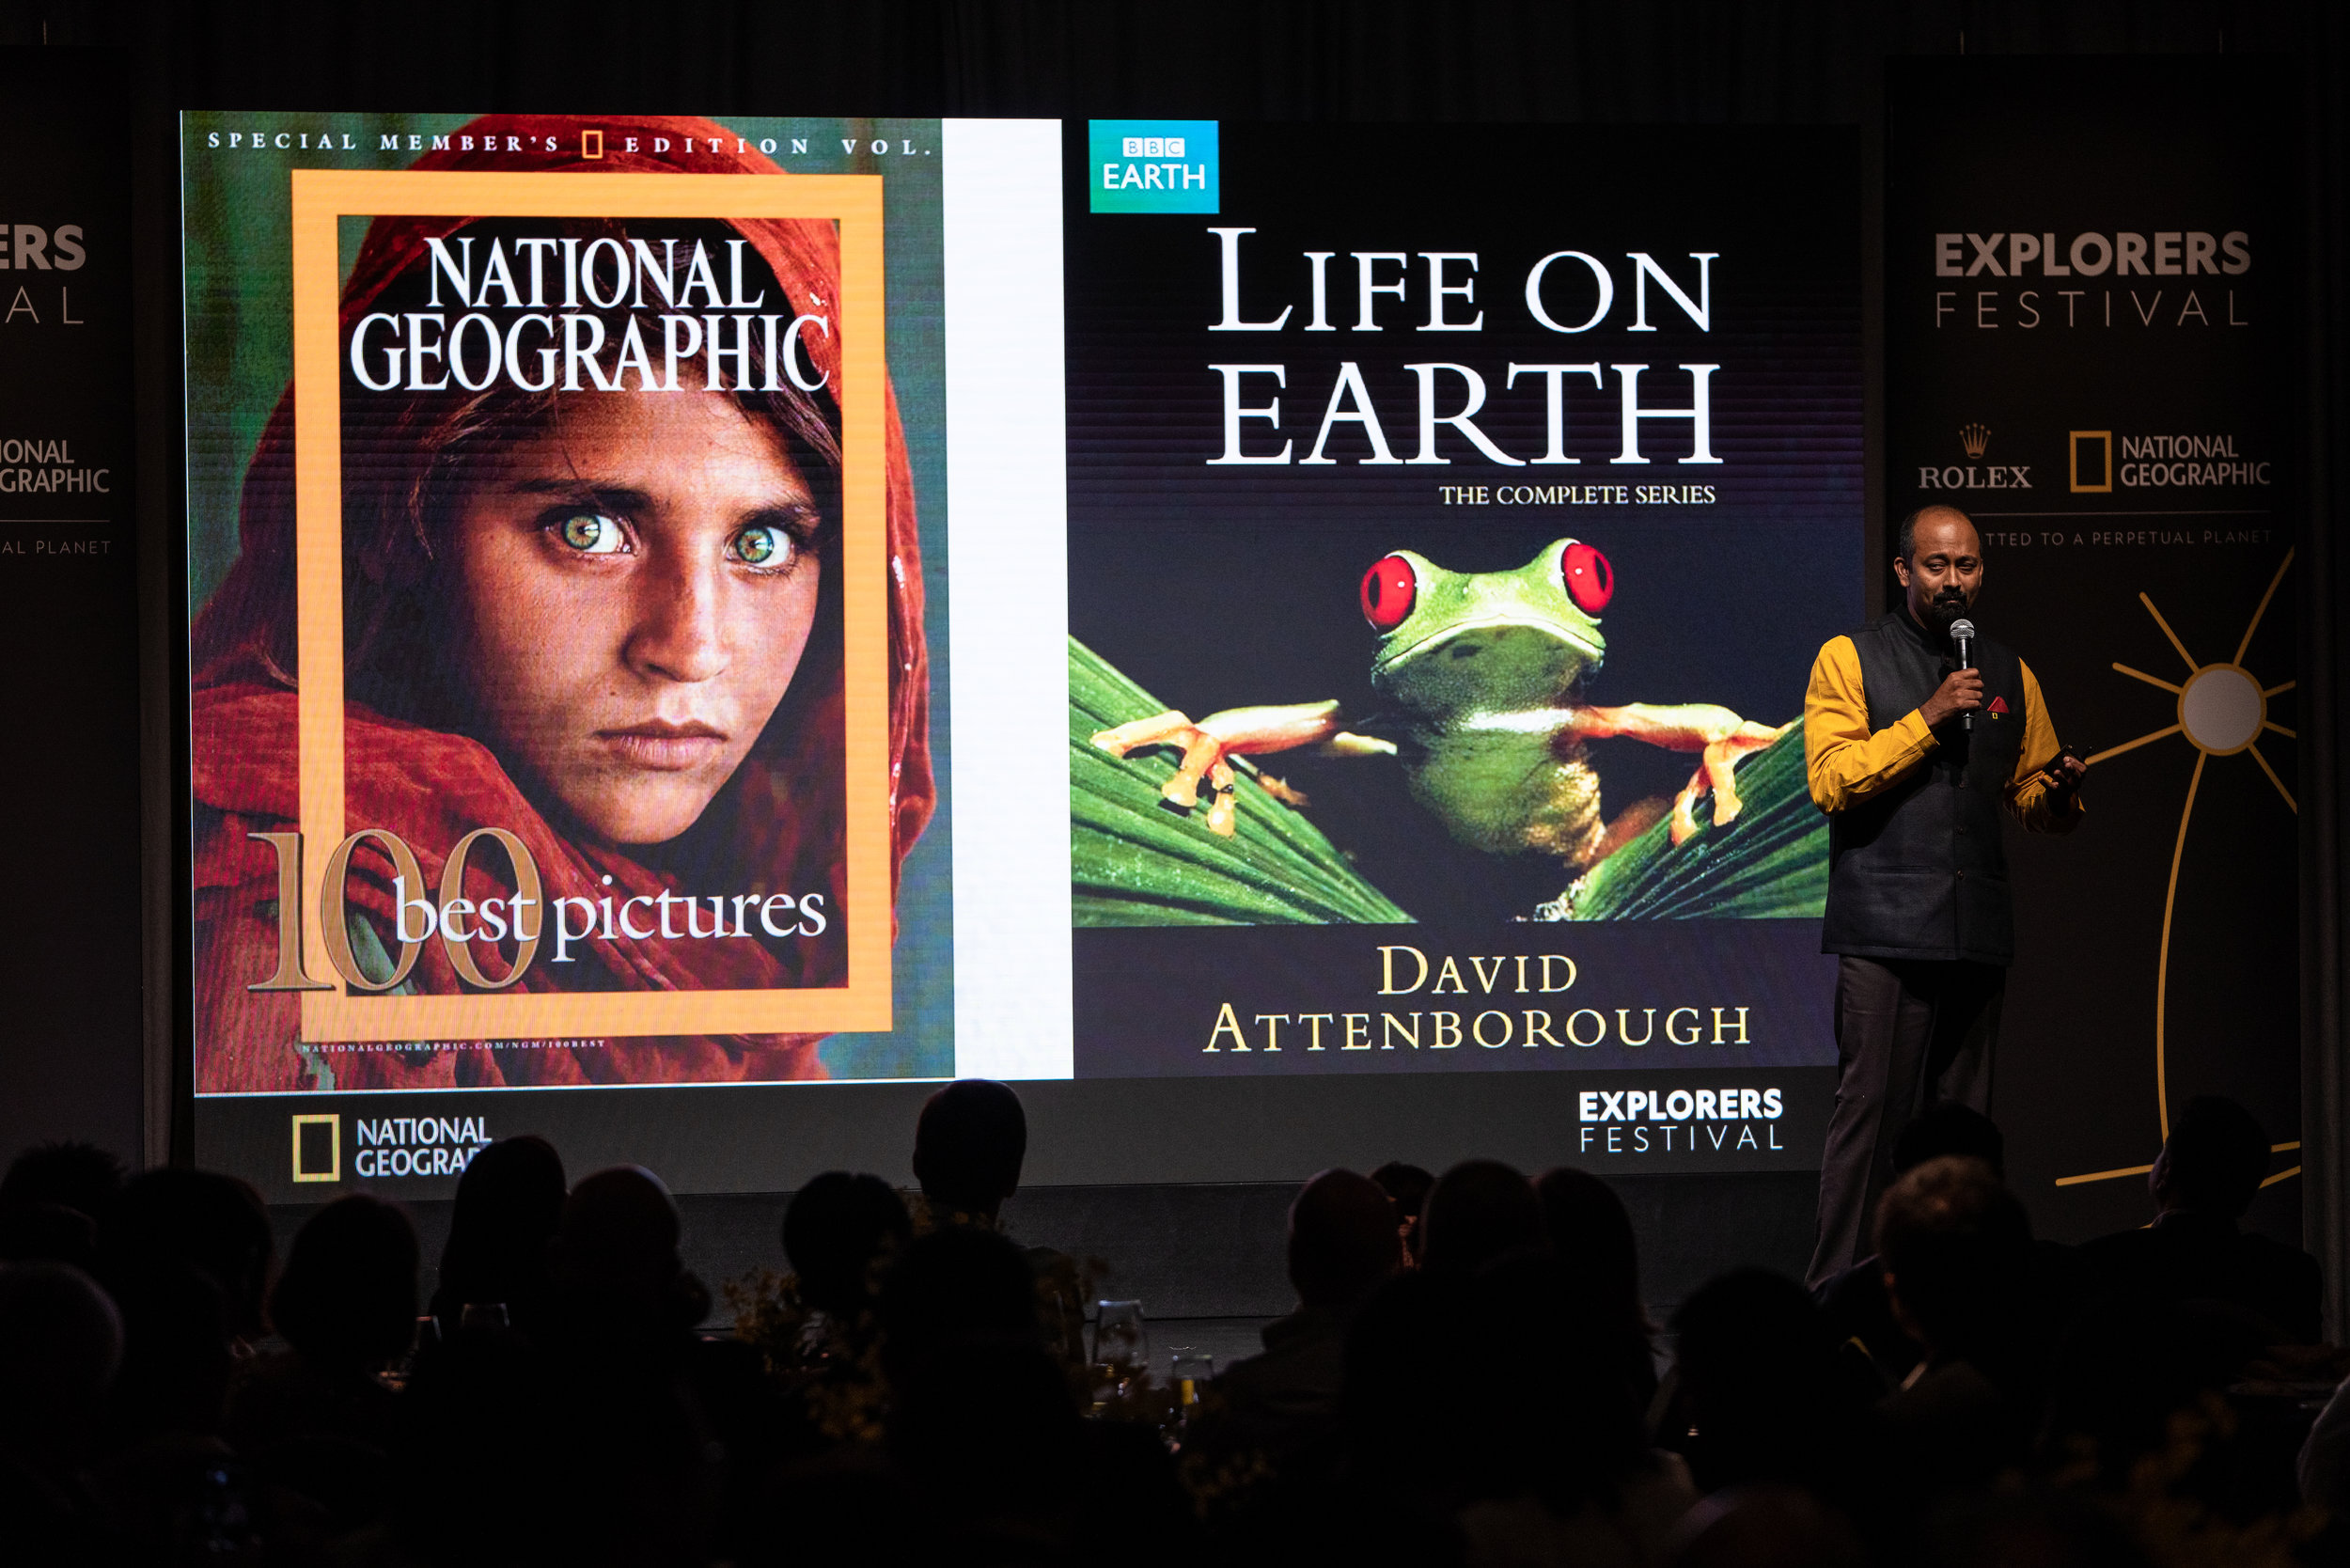 National Geographic Explorers Festival